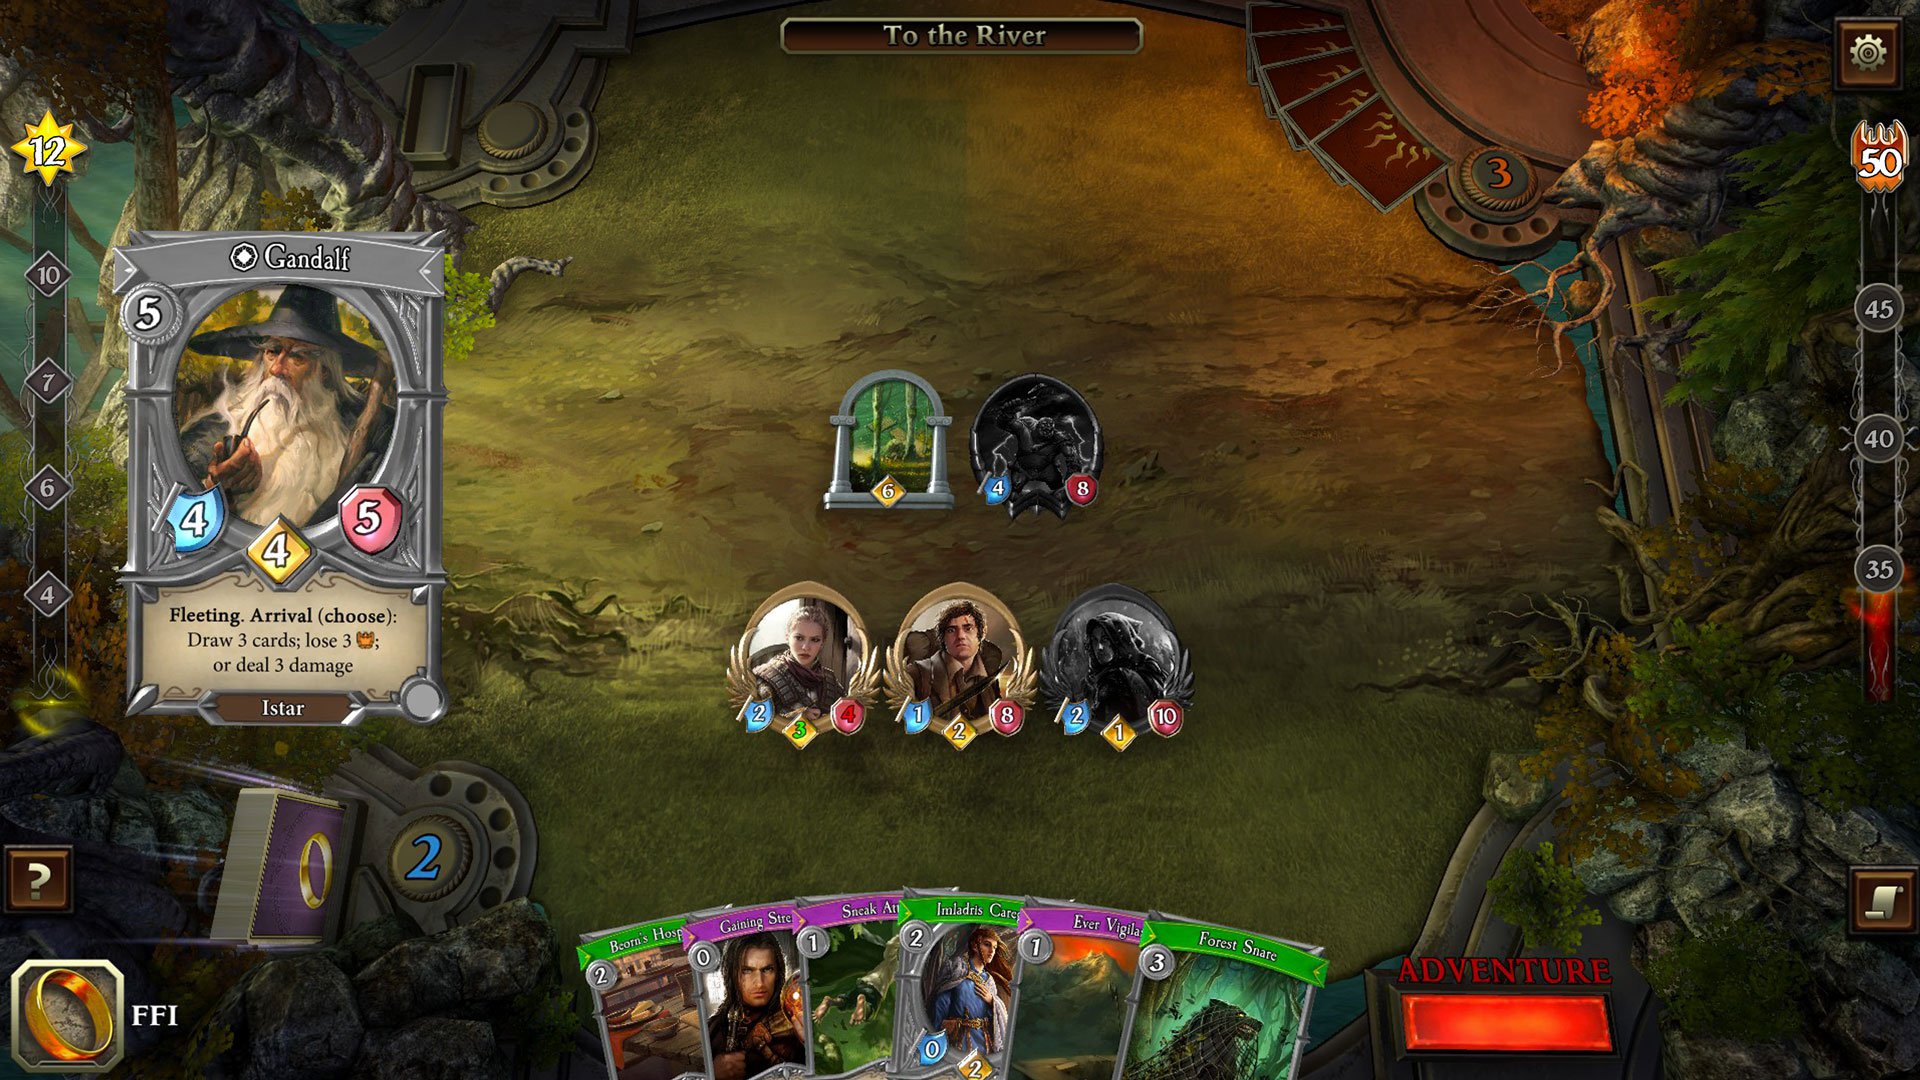 The Lord of the Rings card game's PC adaptation is off to a good start screenshot